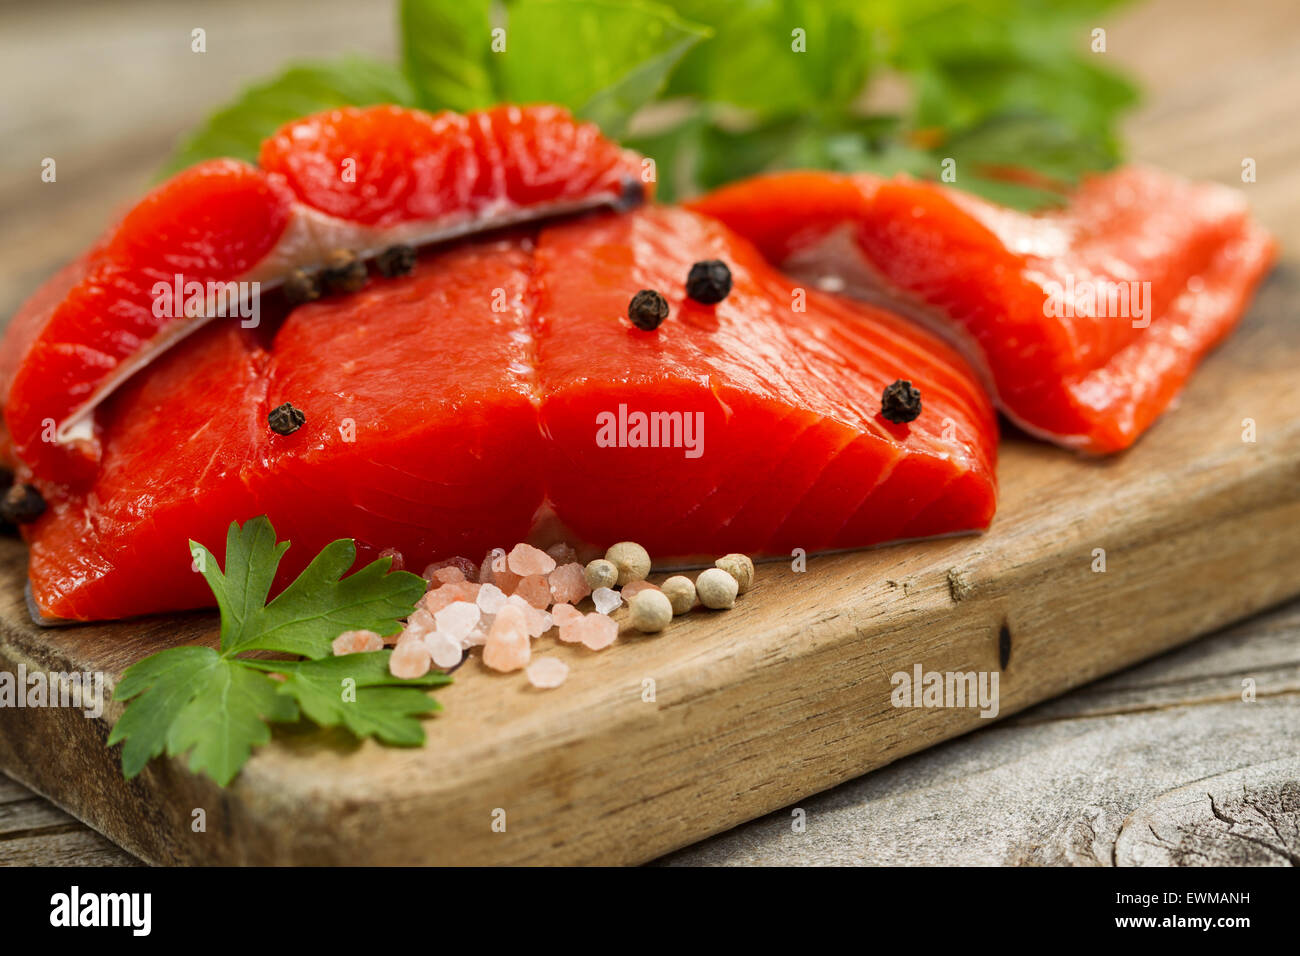 Close up front shot of fresh Copper River red salmon fillets on cutting board, sea salt and herbs. Stock Photo